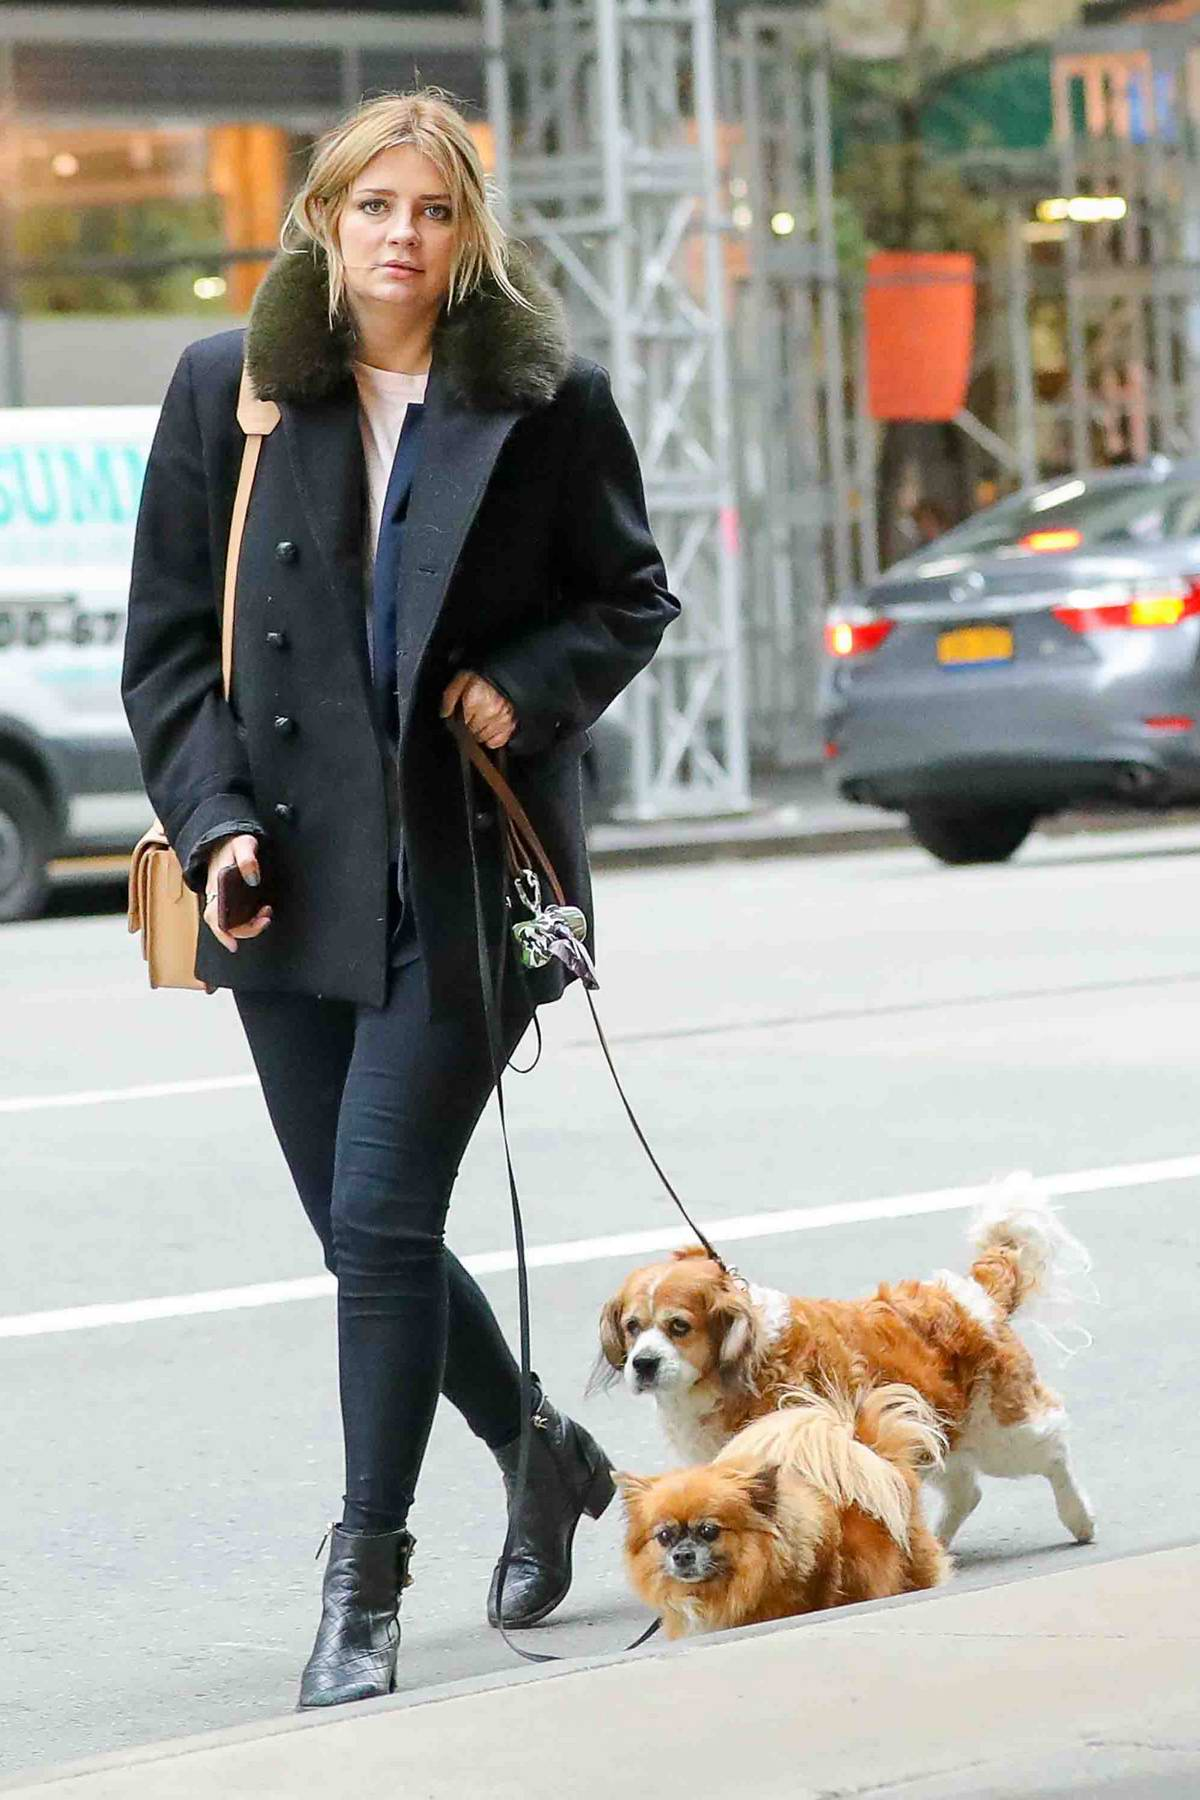 Mischa Barton was spotted with her dogs after visiting the City National Bank branch in New York City